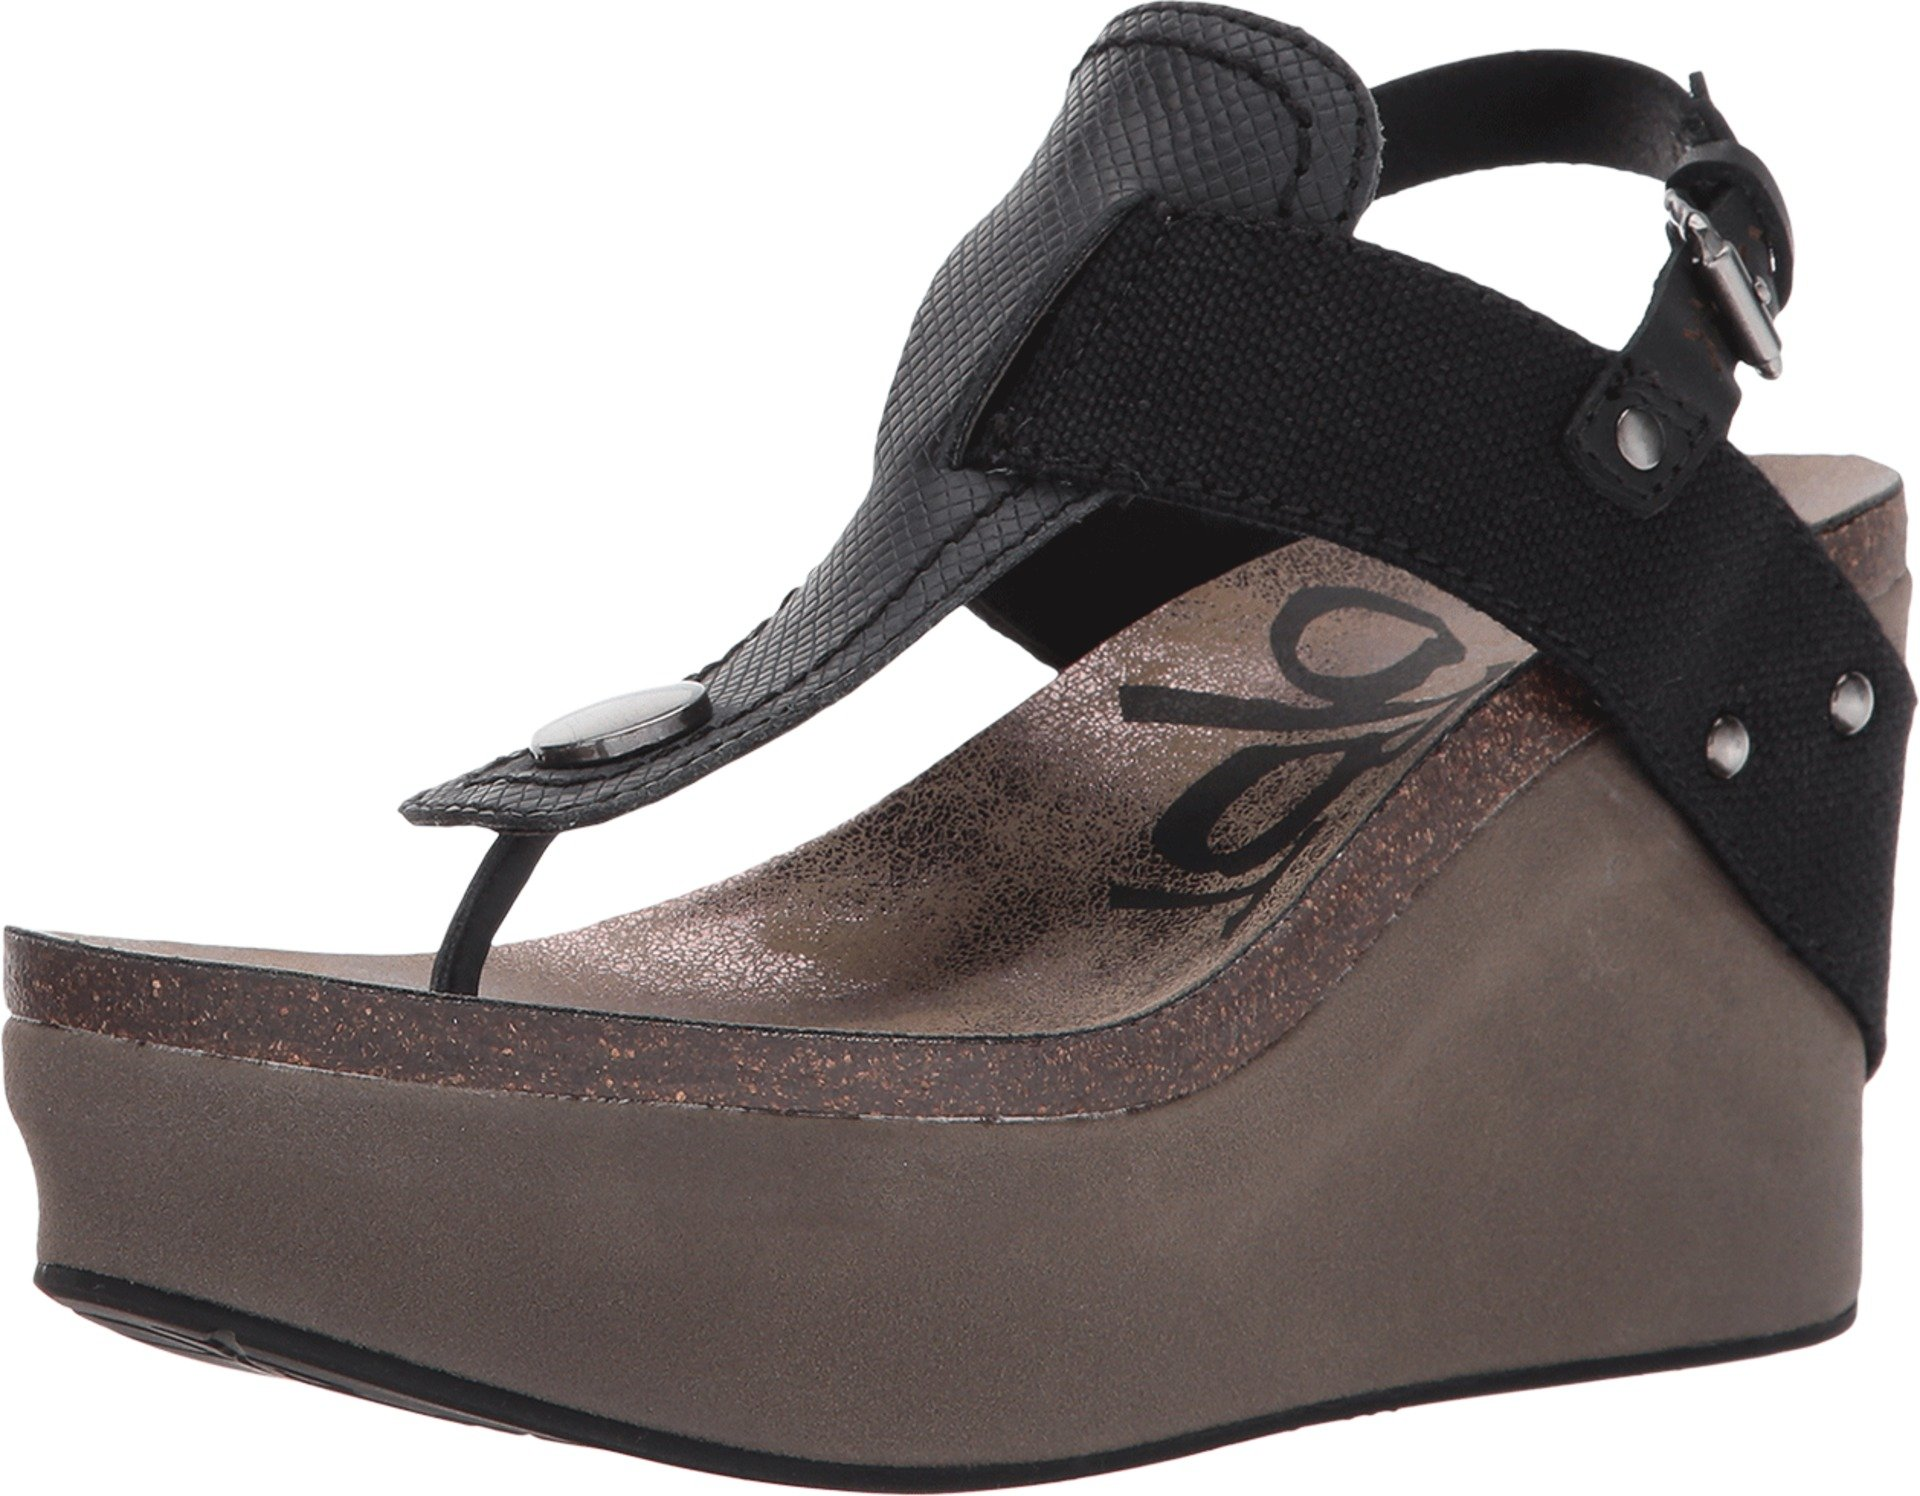 OTBT Women's Joyride Black Wedge (11) by OTBT